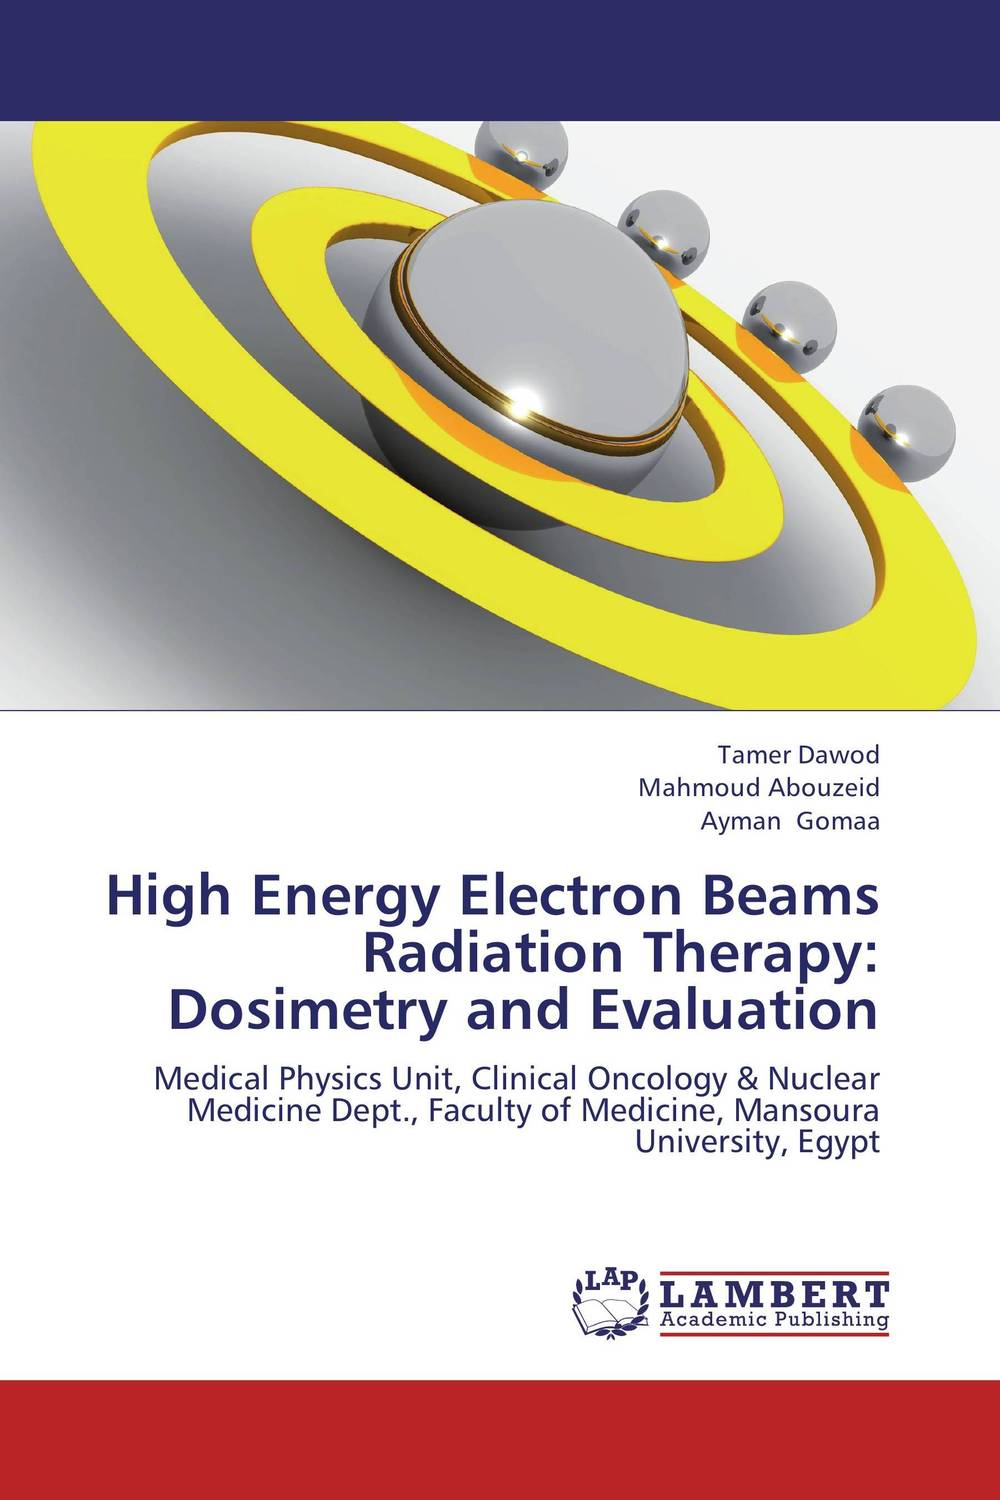 High Energy Electron Beams Radiation Therapy: Dosimetry and Evaluation monte carlo techniques for electron radiotherapy